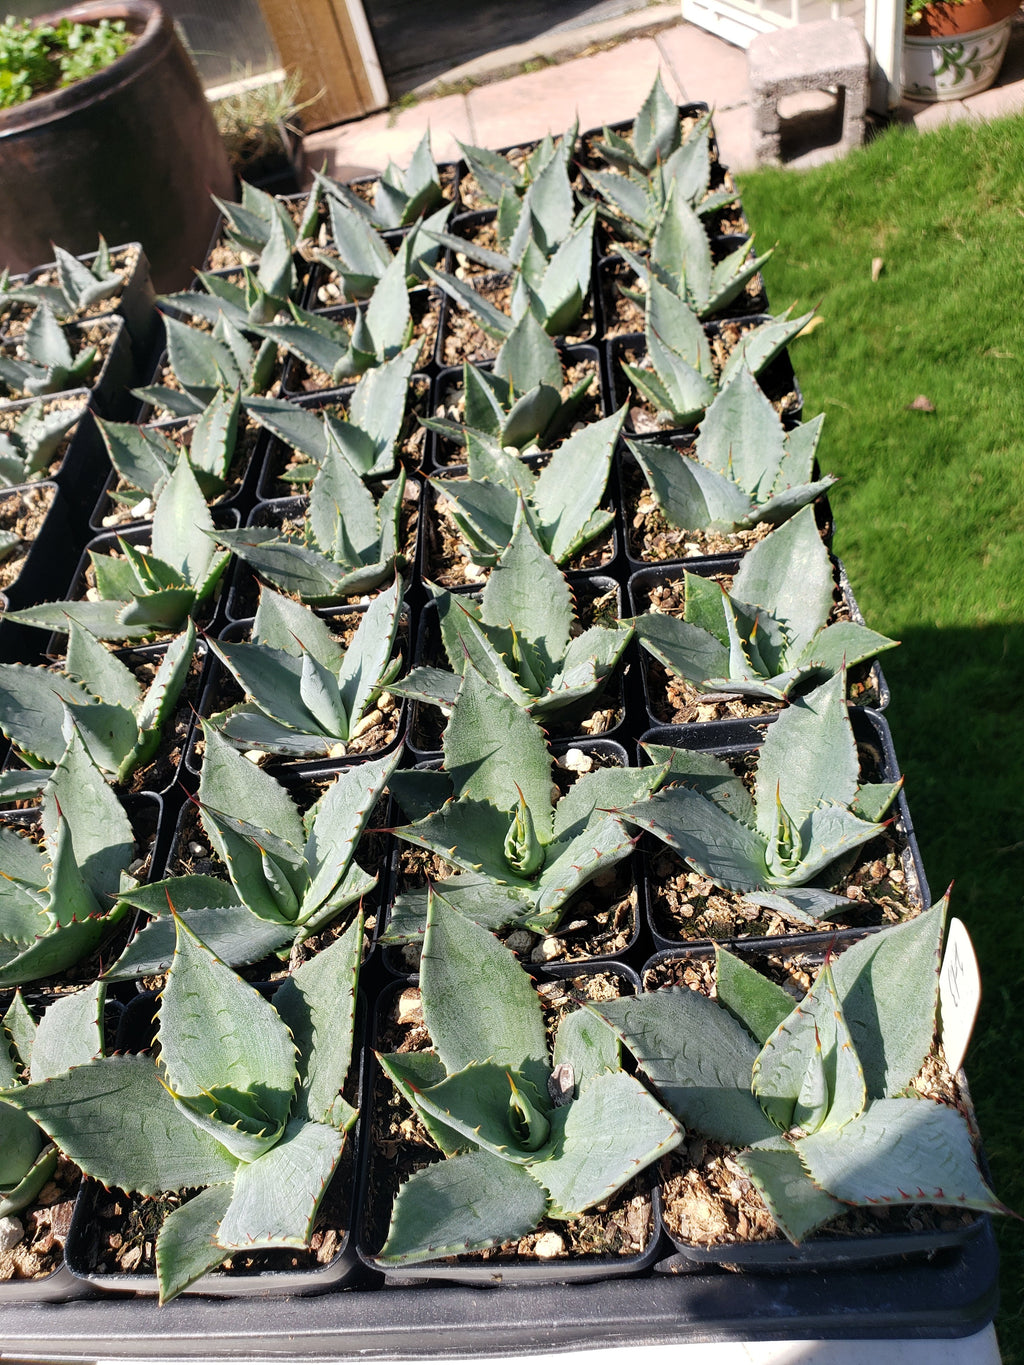 AG015:  Agave parryi v. neomexicana (Truth or Consequences, NM Form) COLD HARDY CACTUS